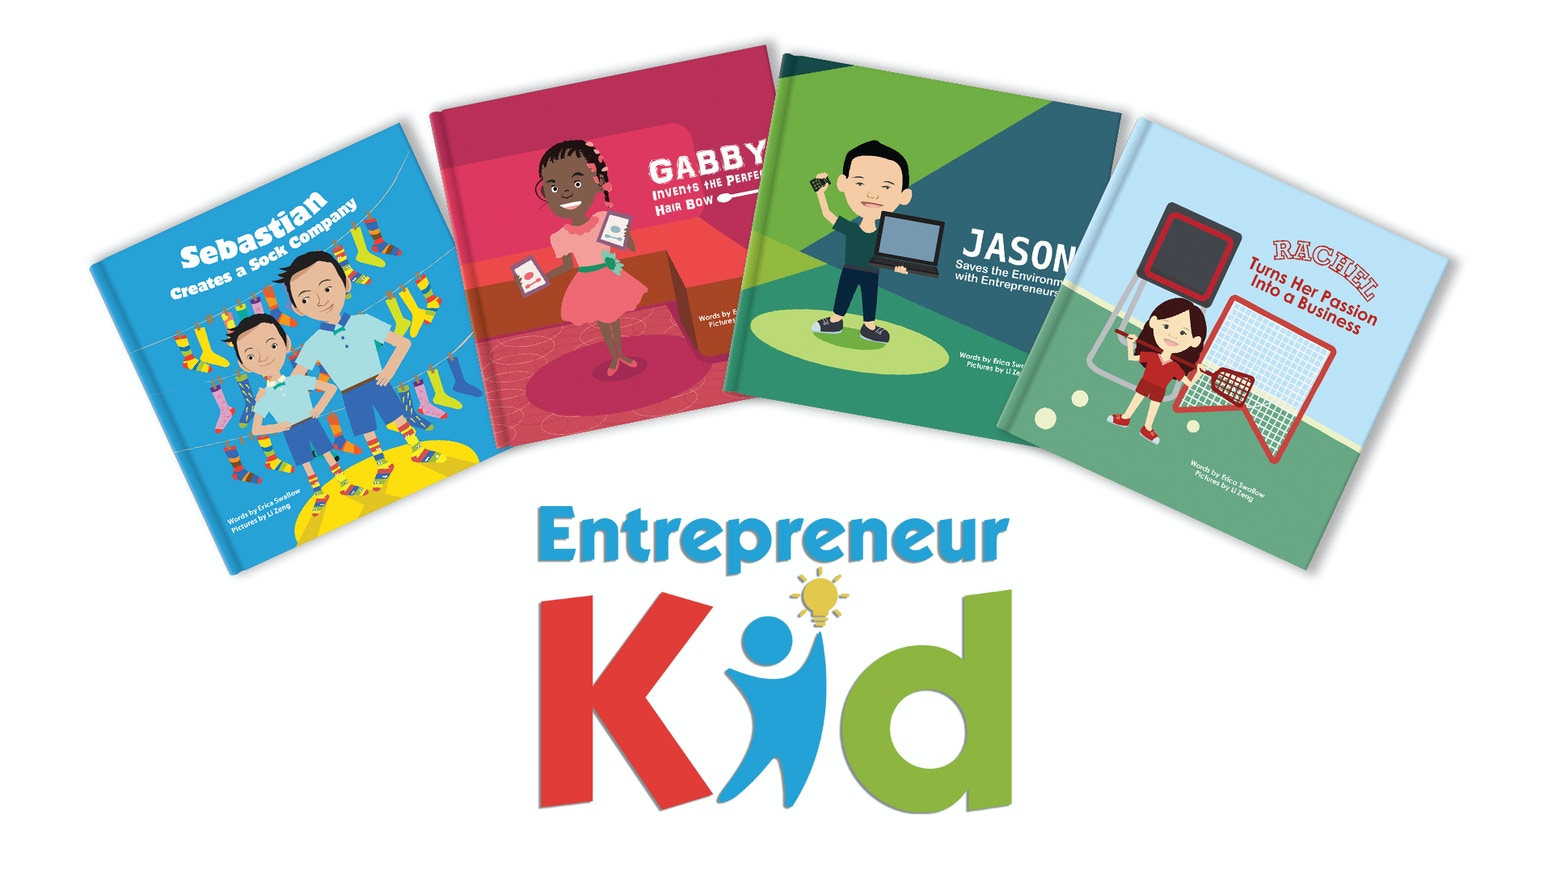 Entrepreneur Kid is a children's picture book series that showcases the true stories of real kid entrepreneurs and their businesses.